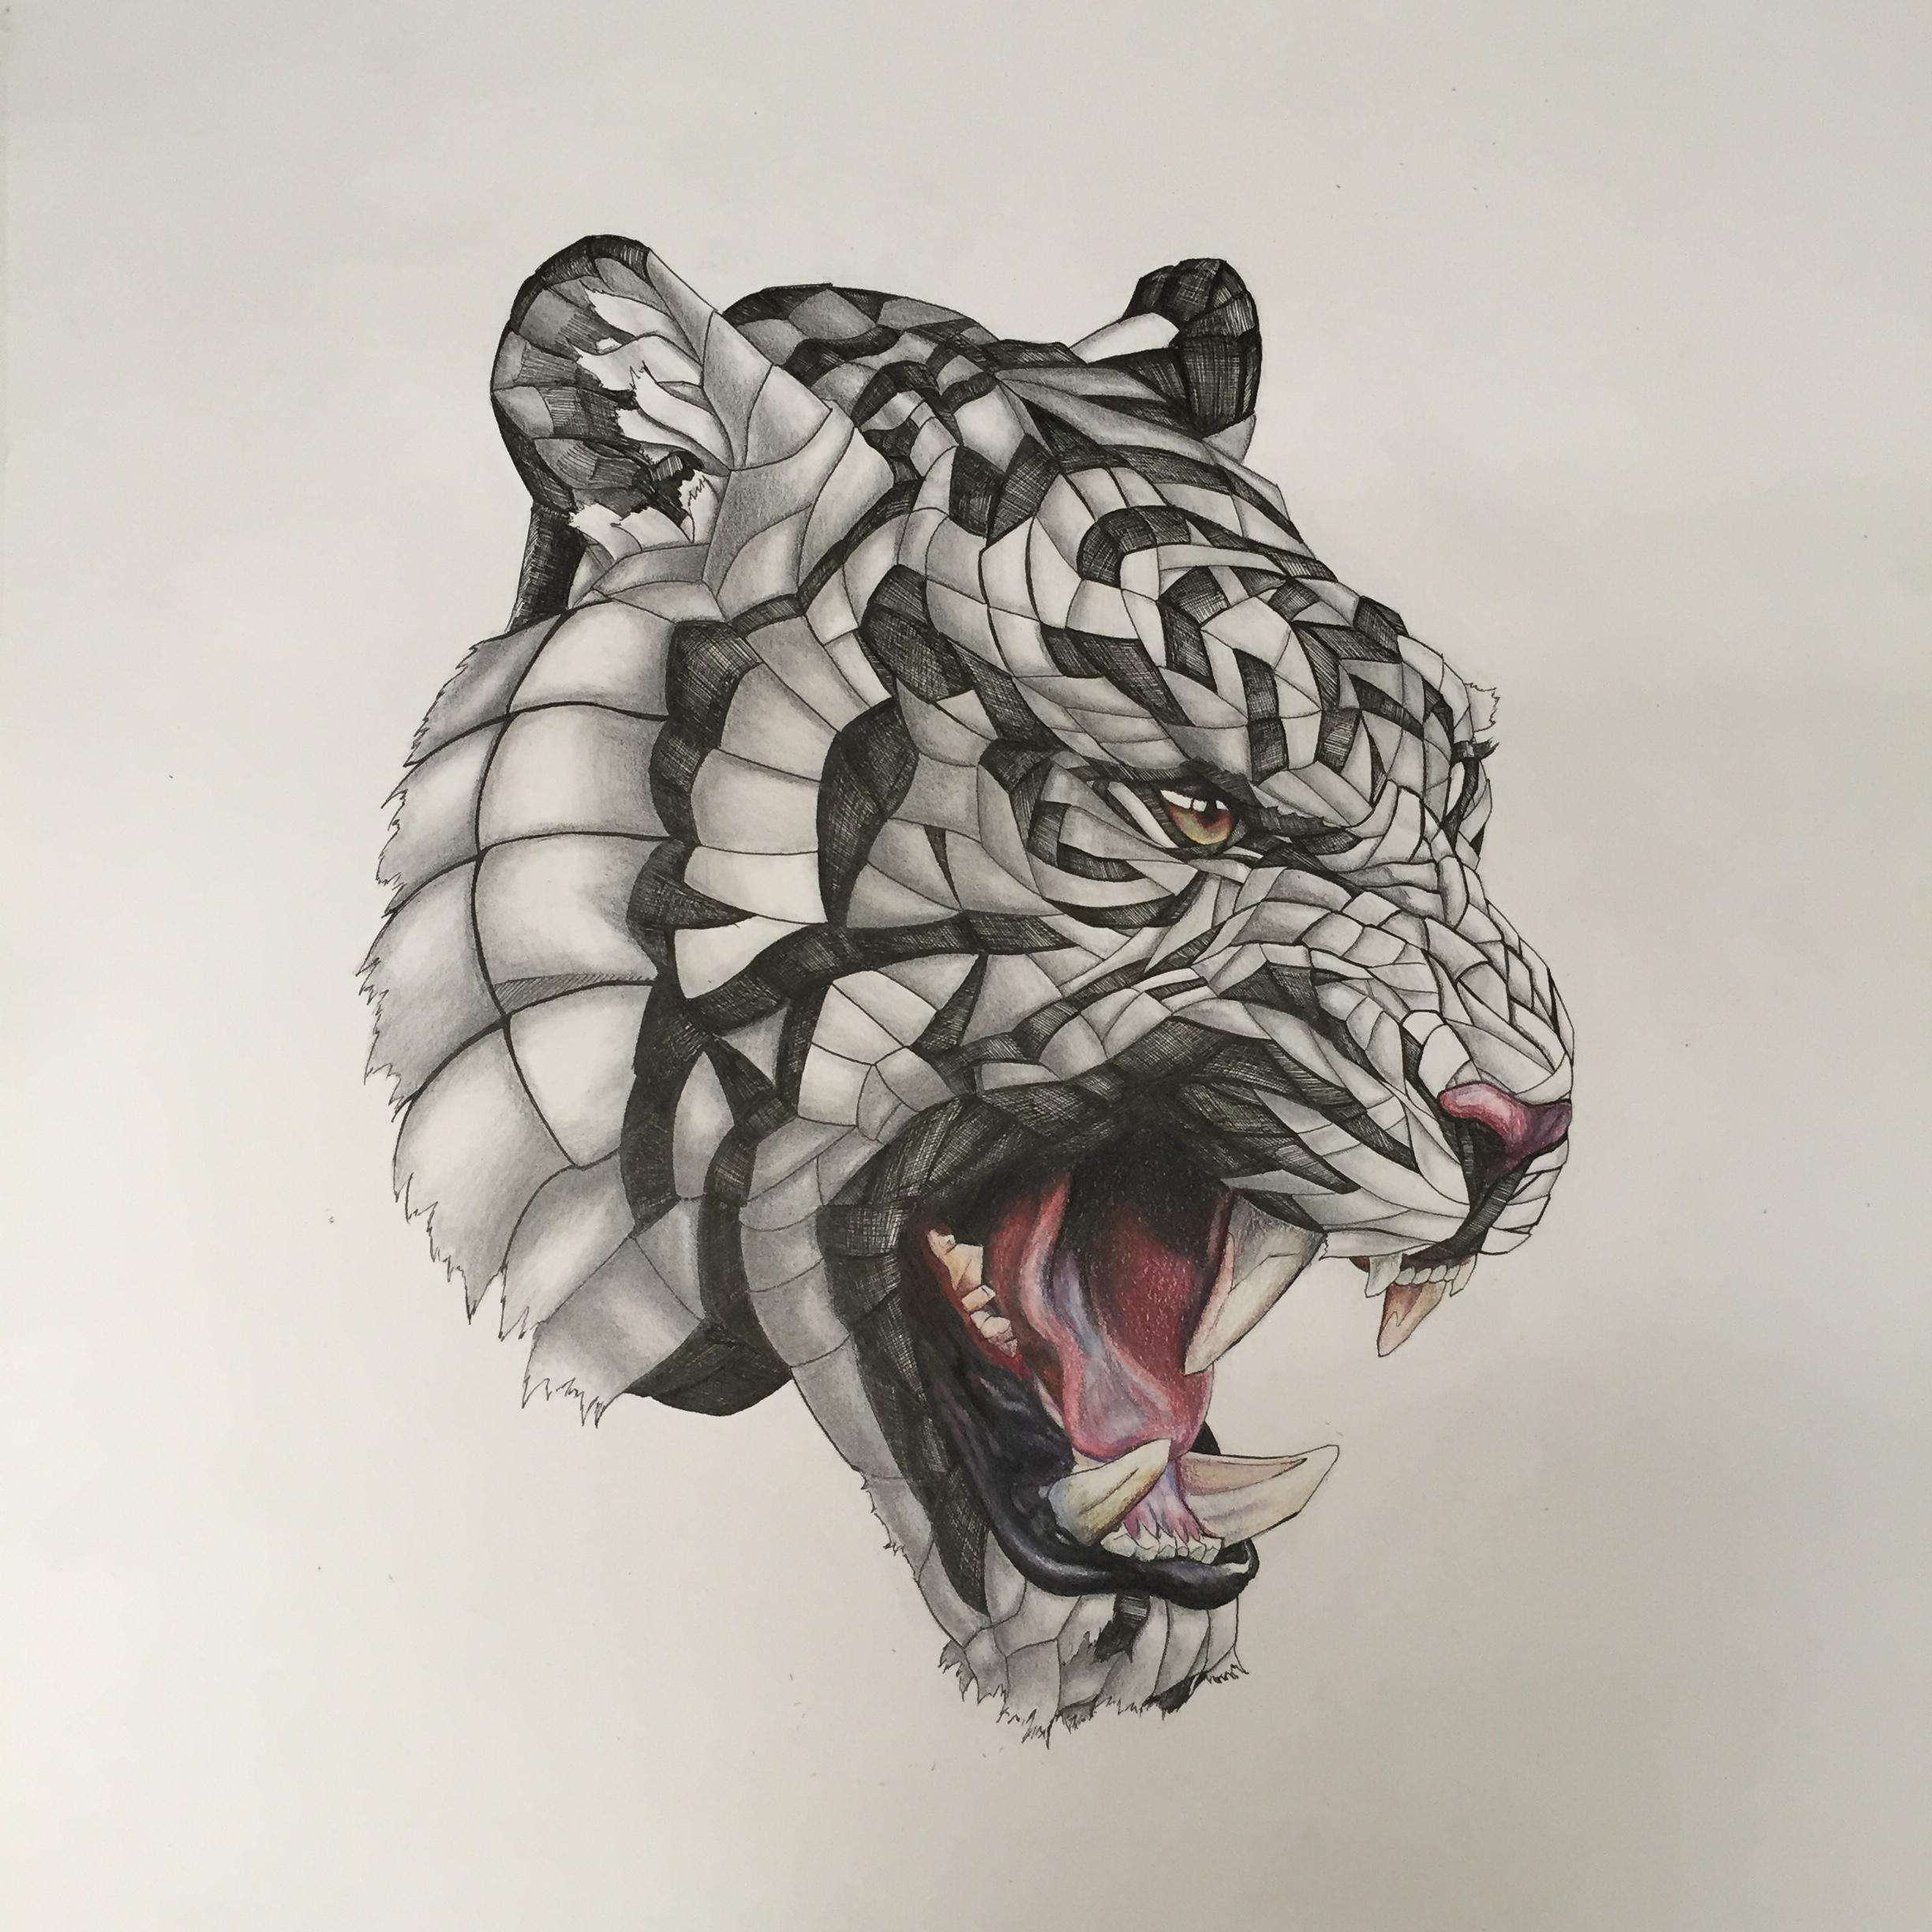 2448x2448 Wrapped Tiger, Pencilpencolour Pencil, 20x20 In.